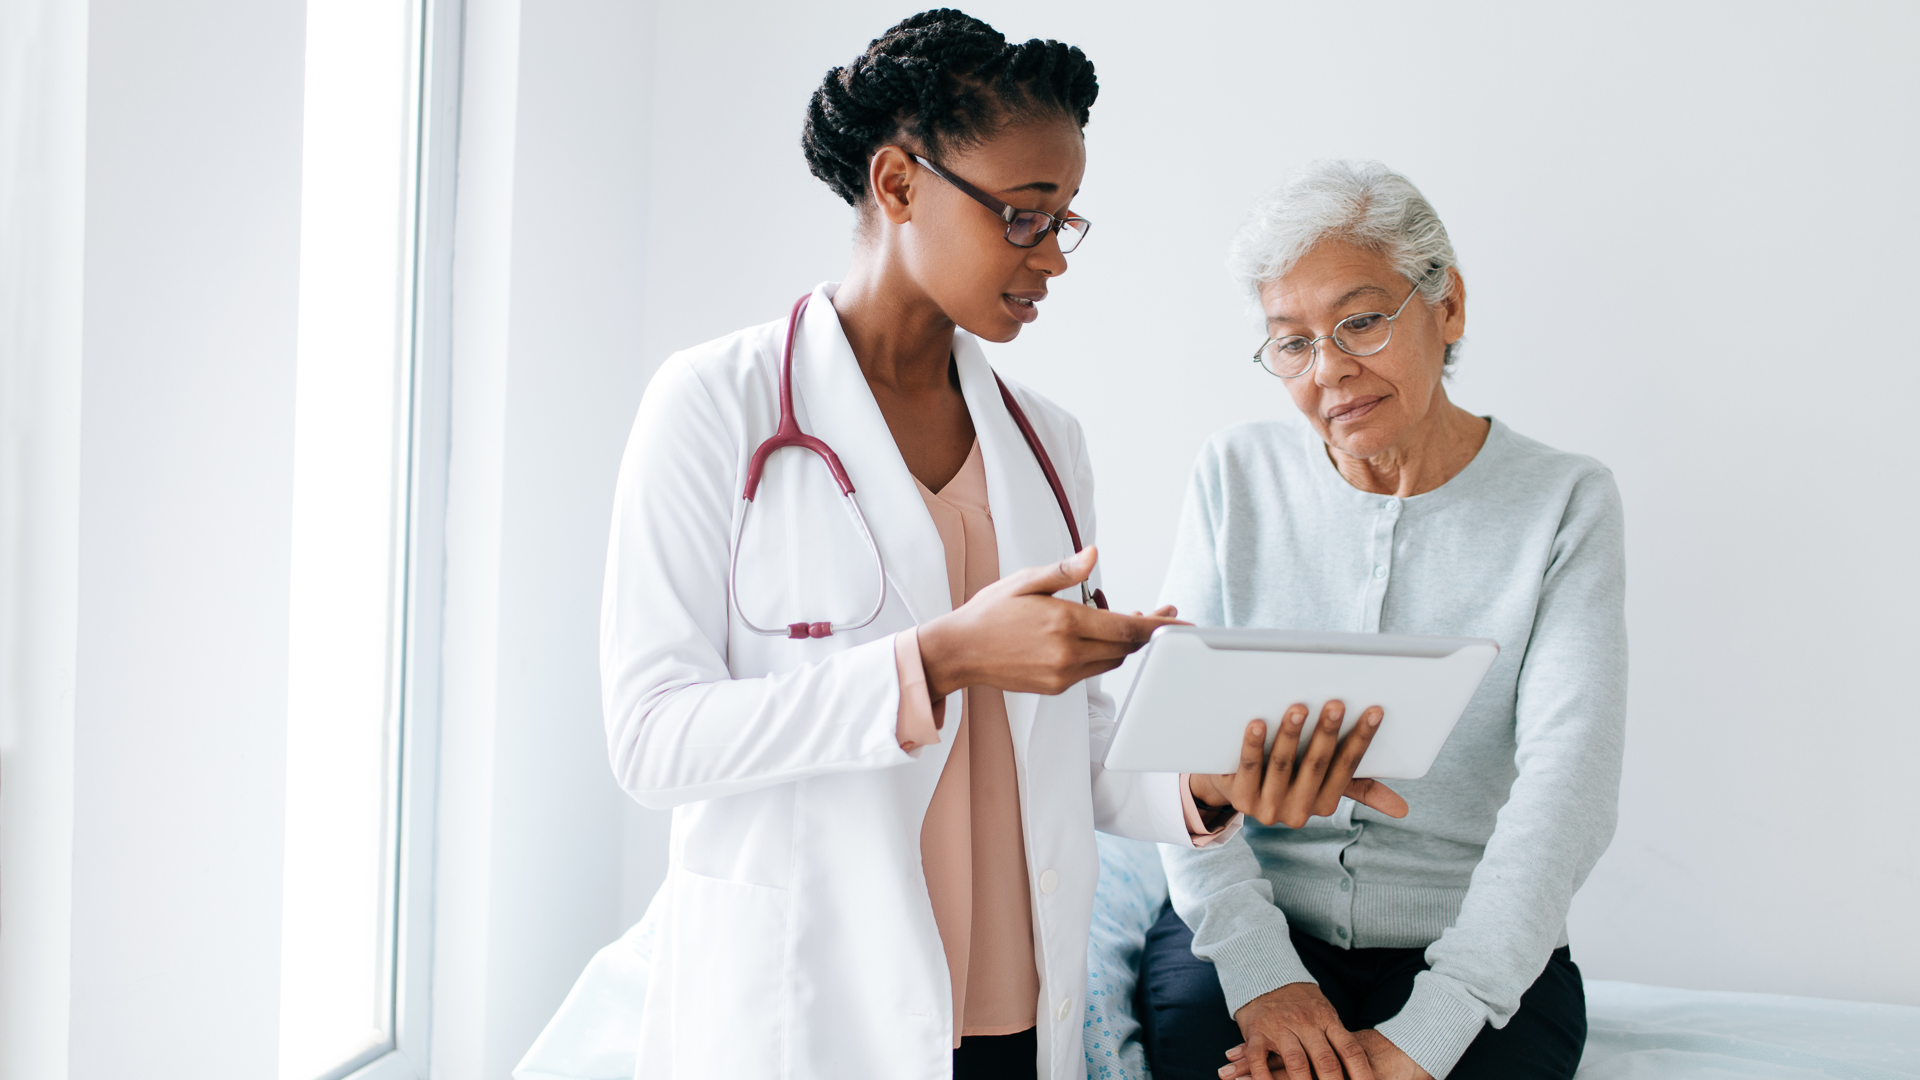 A black female doctor standing next to female patient and showing her something on digital tablet.